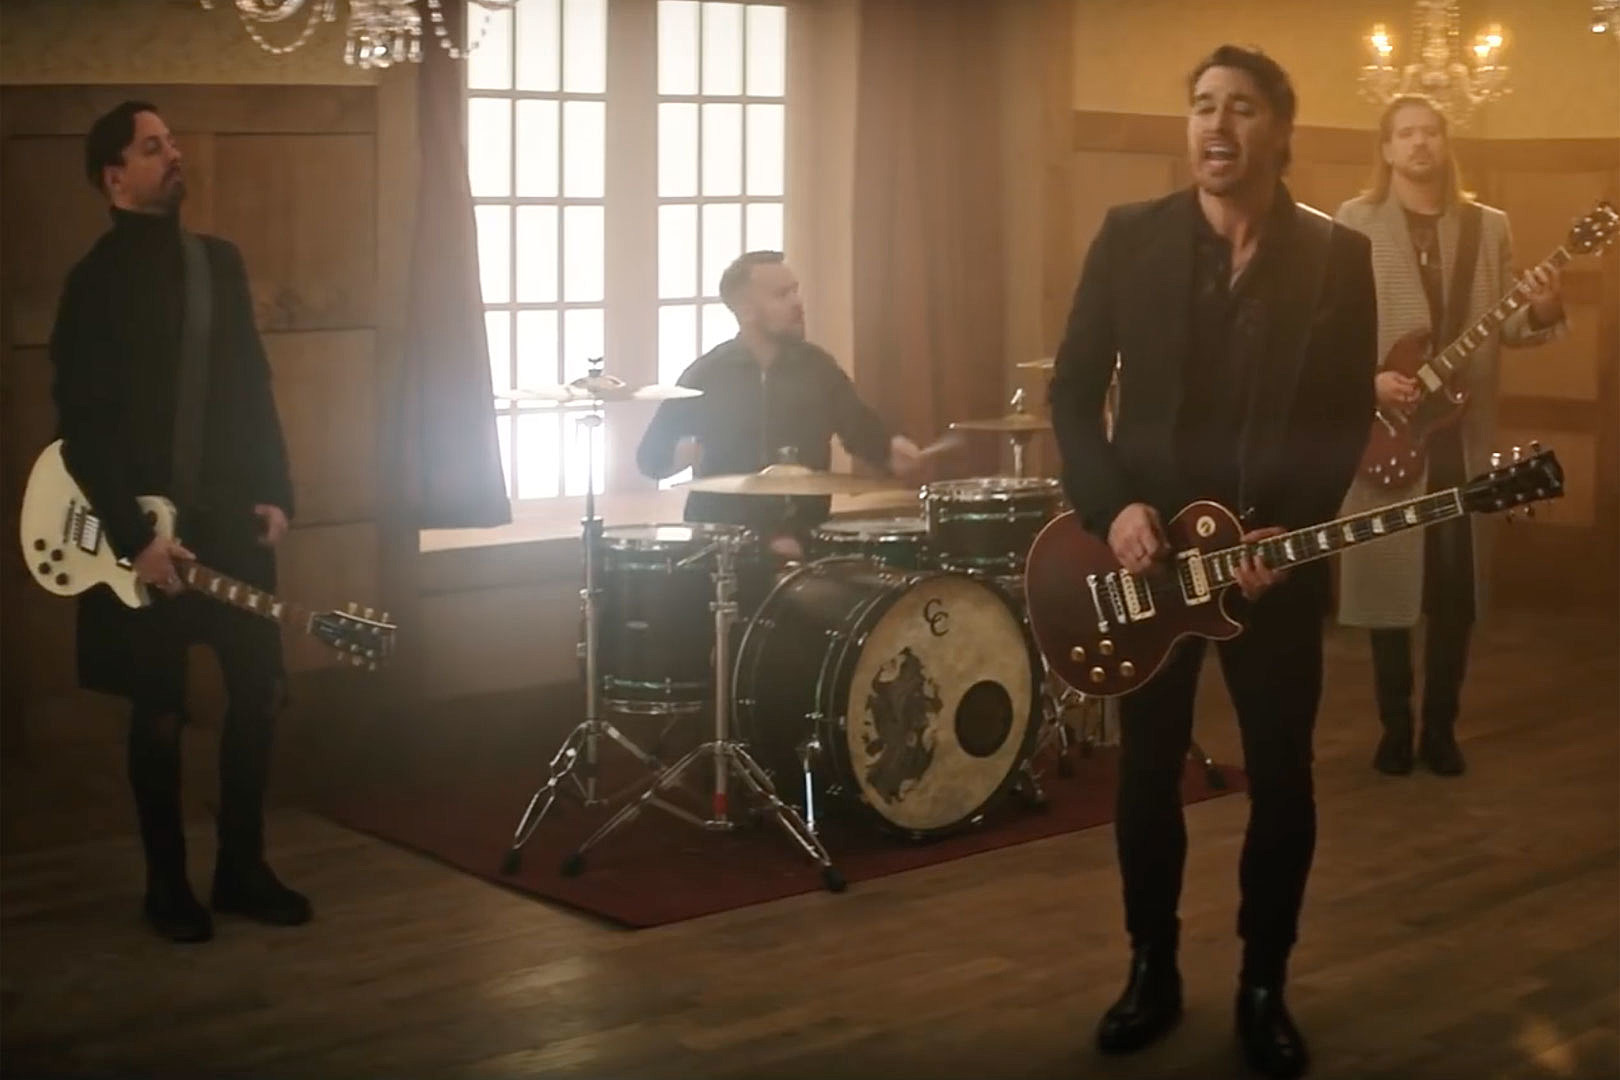 Red Sun Rising Engage Their 'Deathwish' With New Video